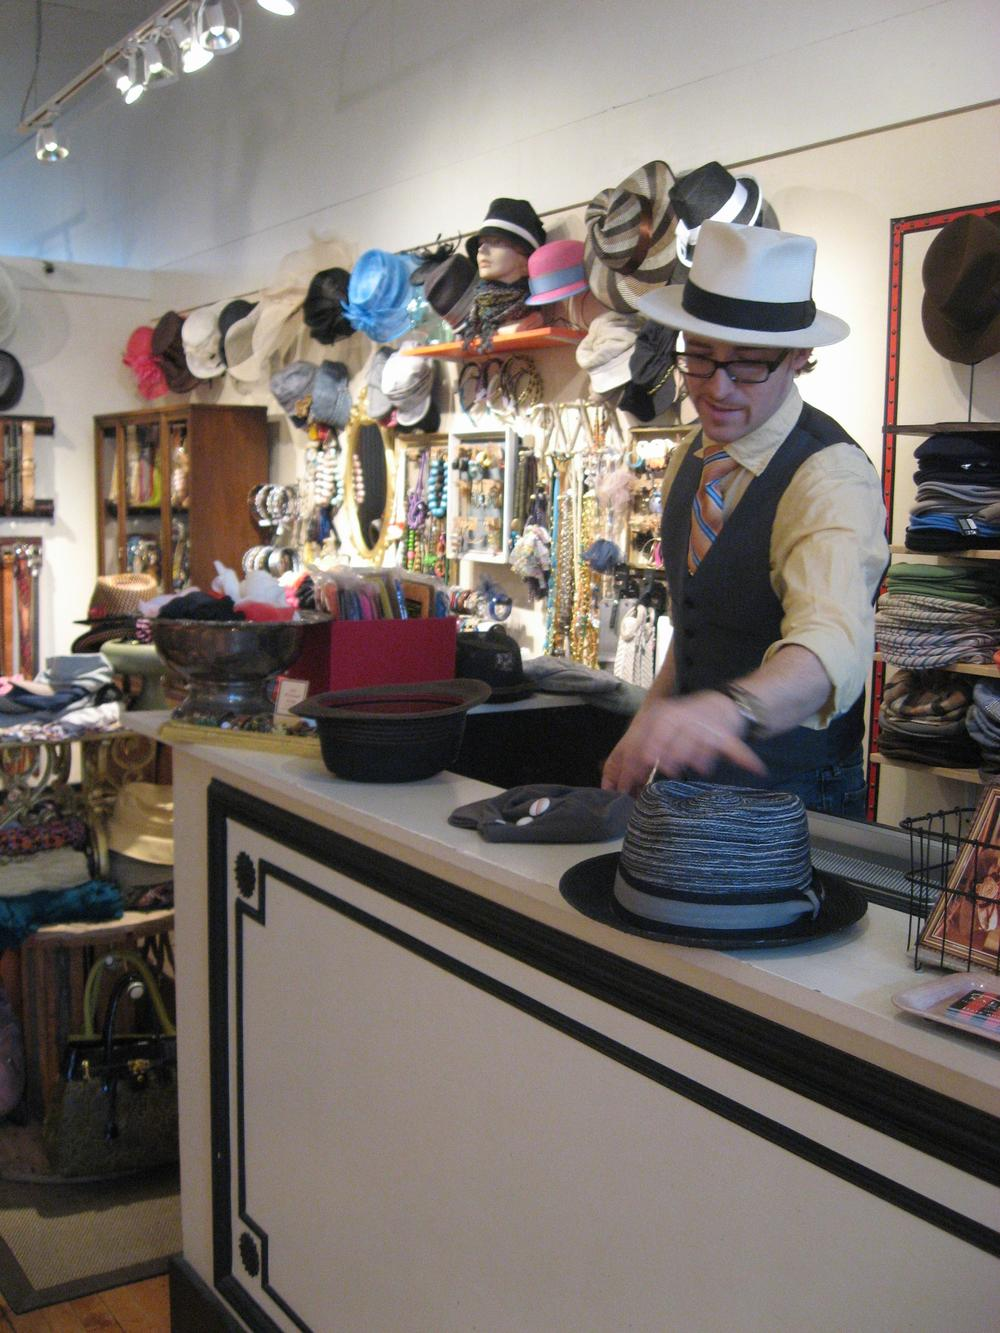 Salmagundi, a hat store in Jamaica Plain owned by Jessen Fitzpatrick, has done brisk business leading up to the royal wedding. (Curt Nickisch/WBUR)